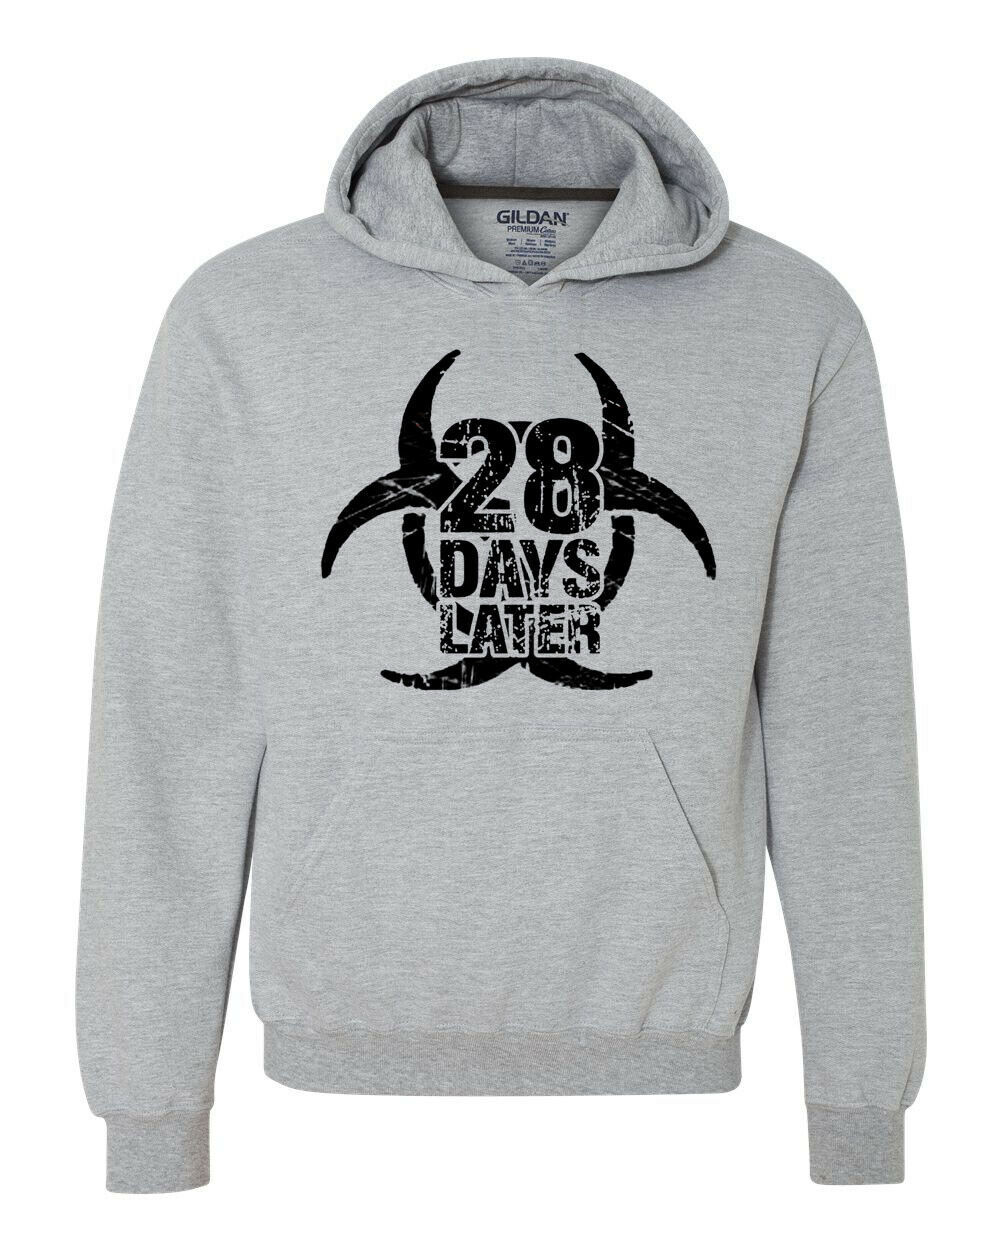 28 Days Later Hoodie horror zombie movie sweatshirt the rage virus 28 weeks